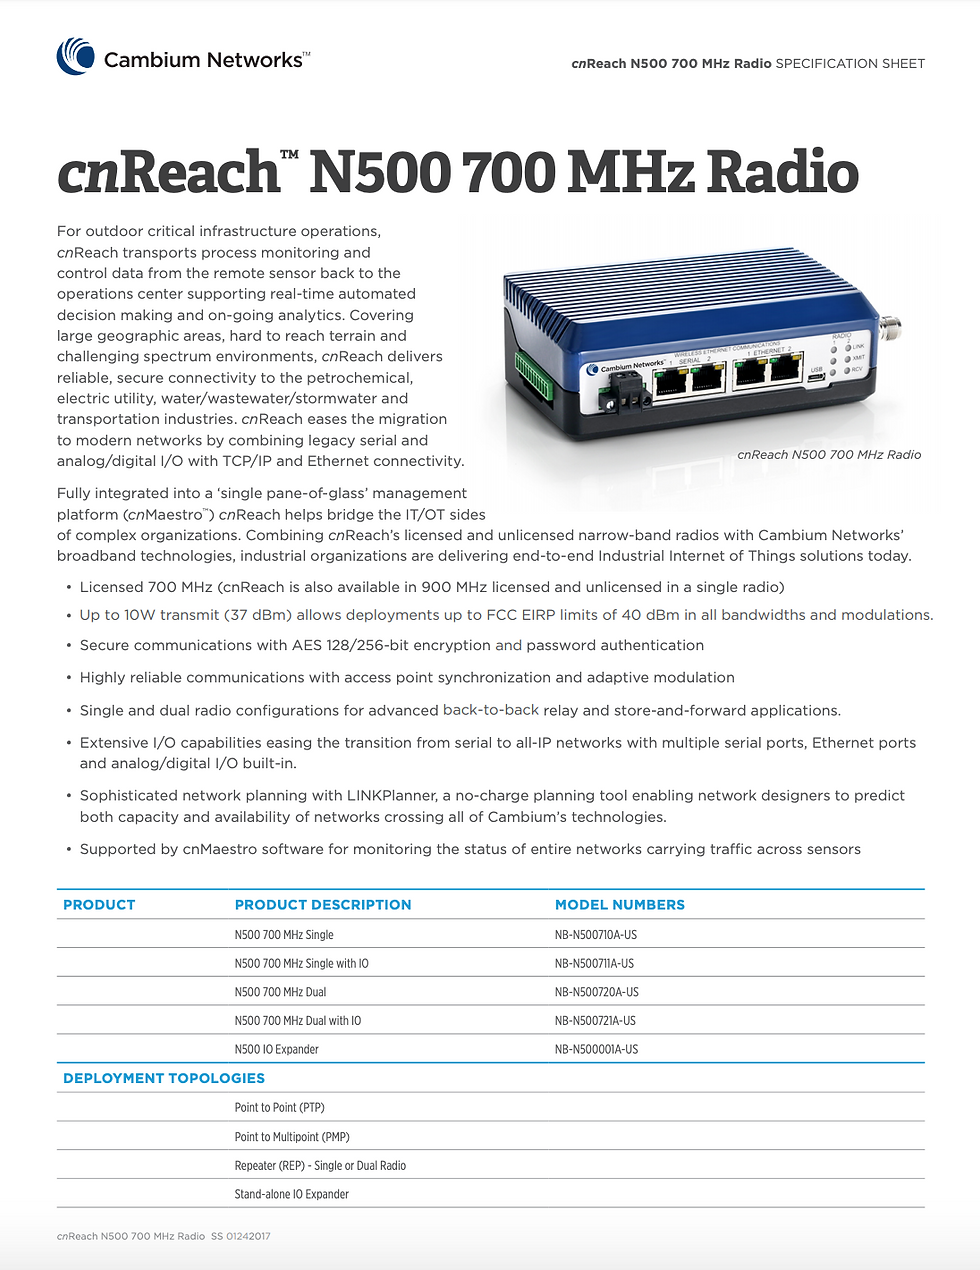 cnReach N500 700 MHz Specifications Sheet